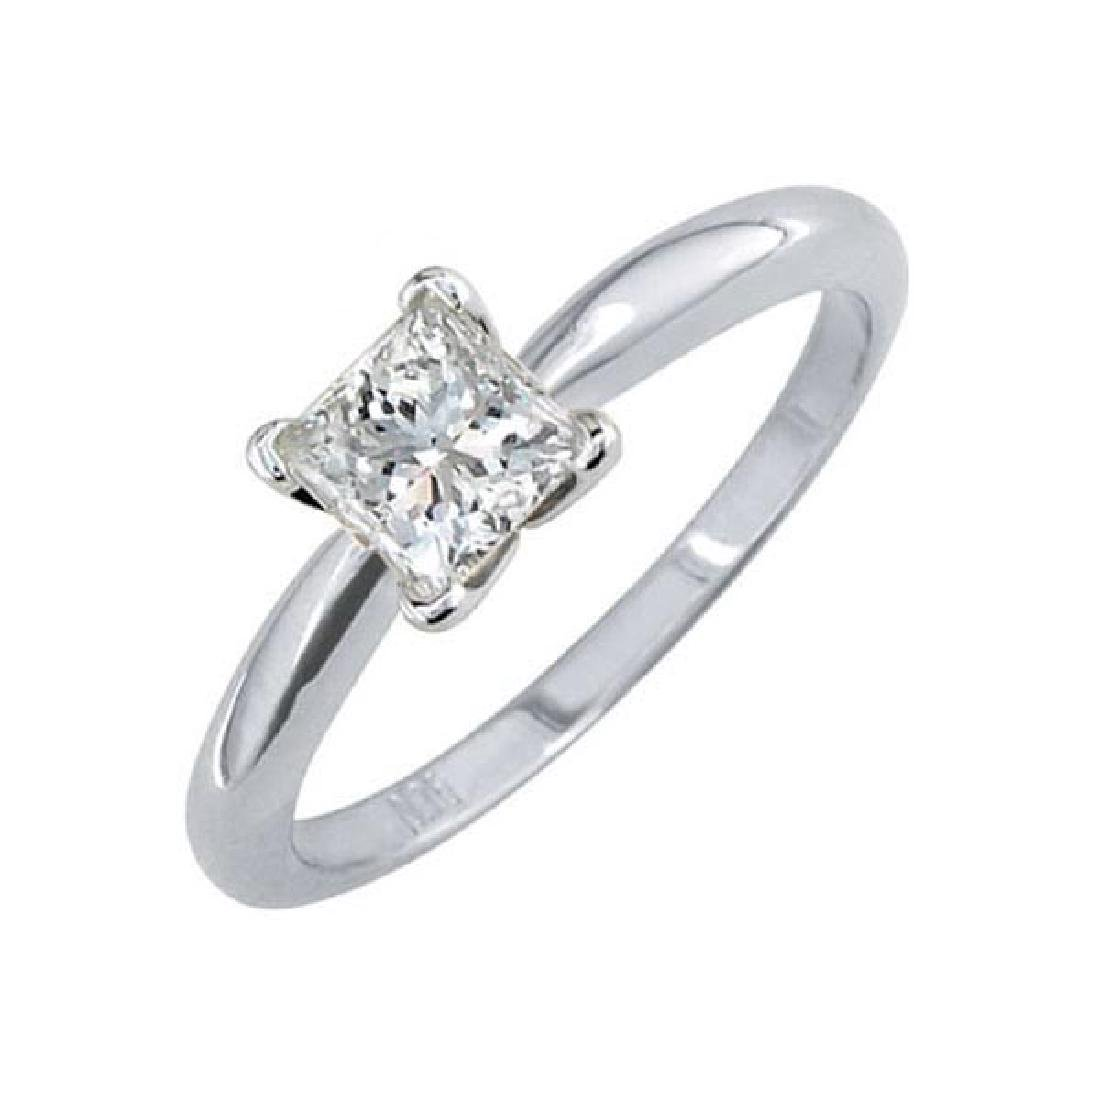 Certified 1 CTW Princess Diamond Solitaire 14k Ring D/S